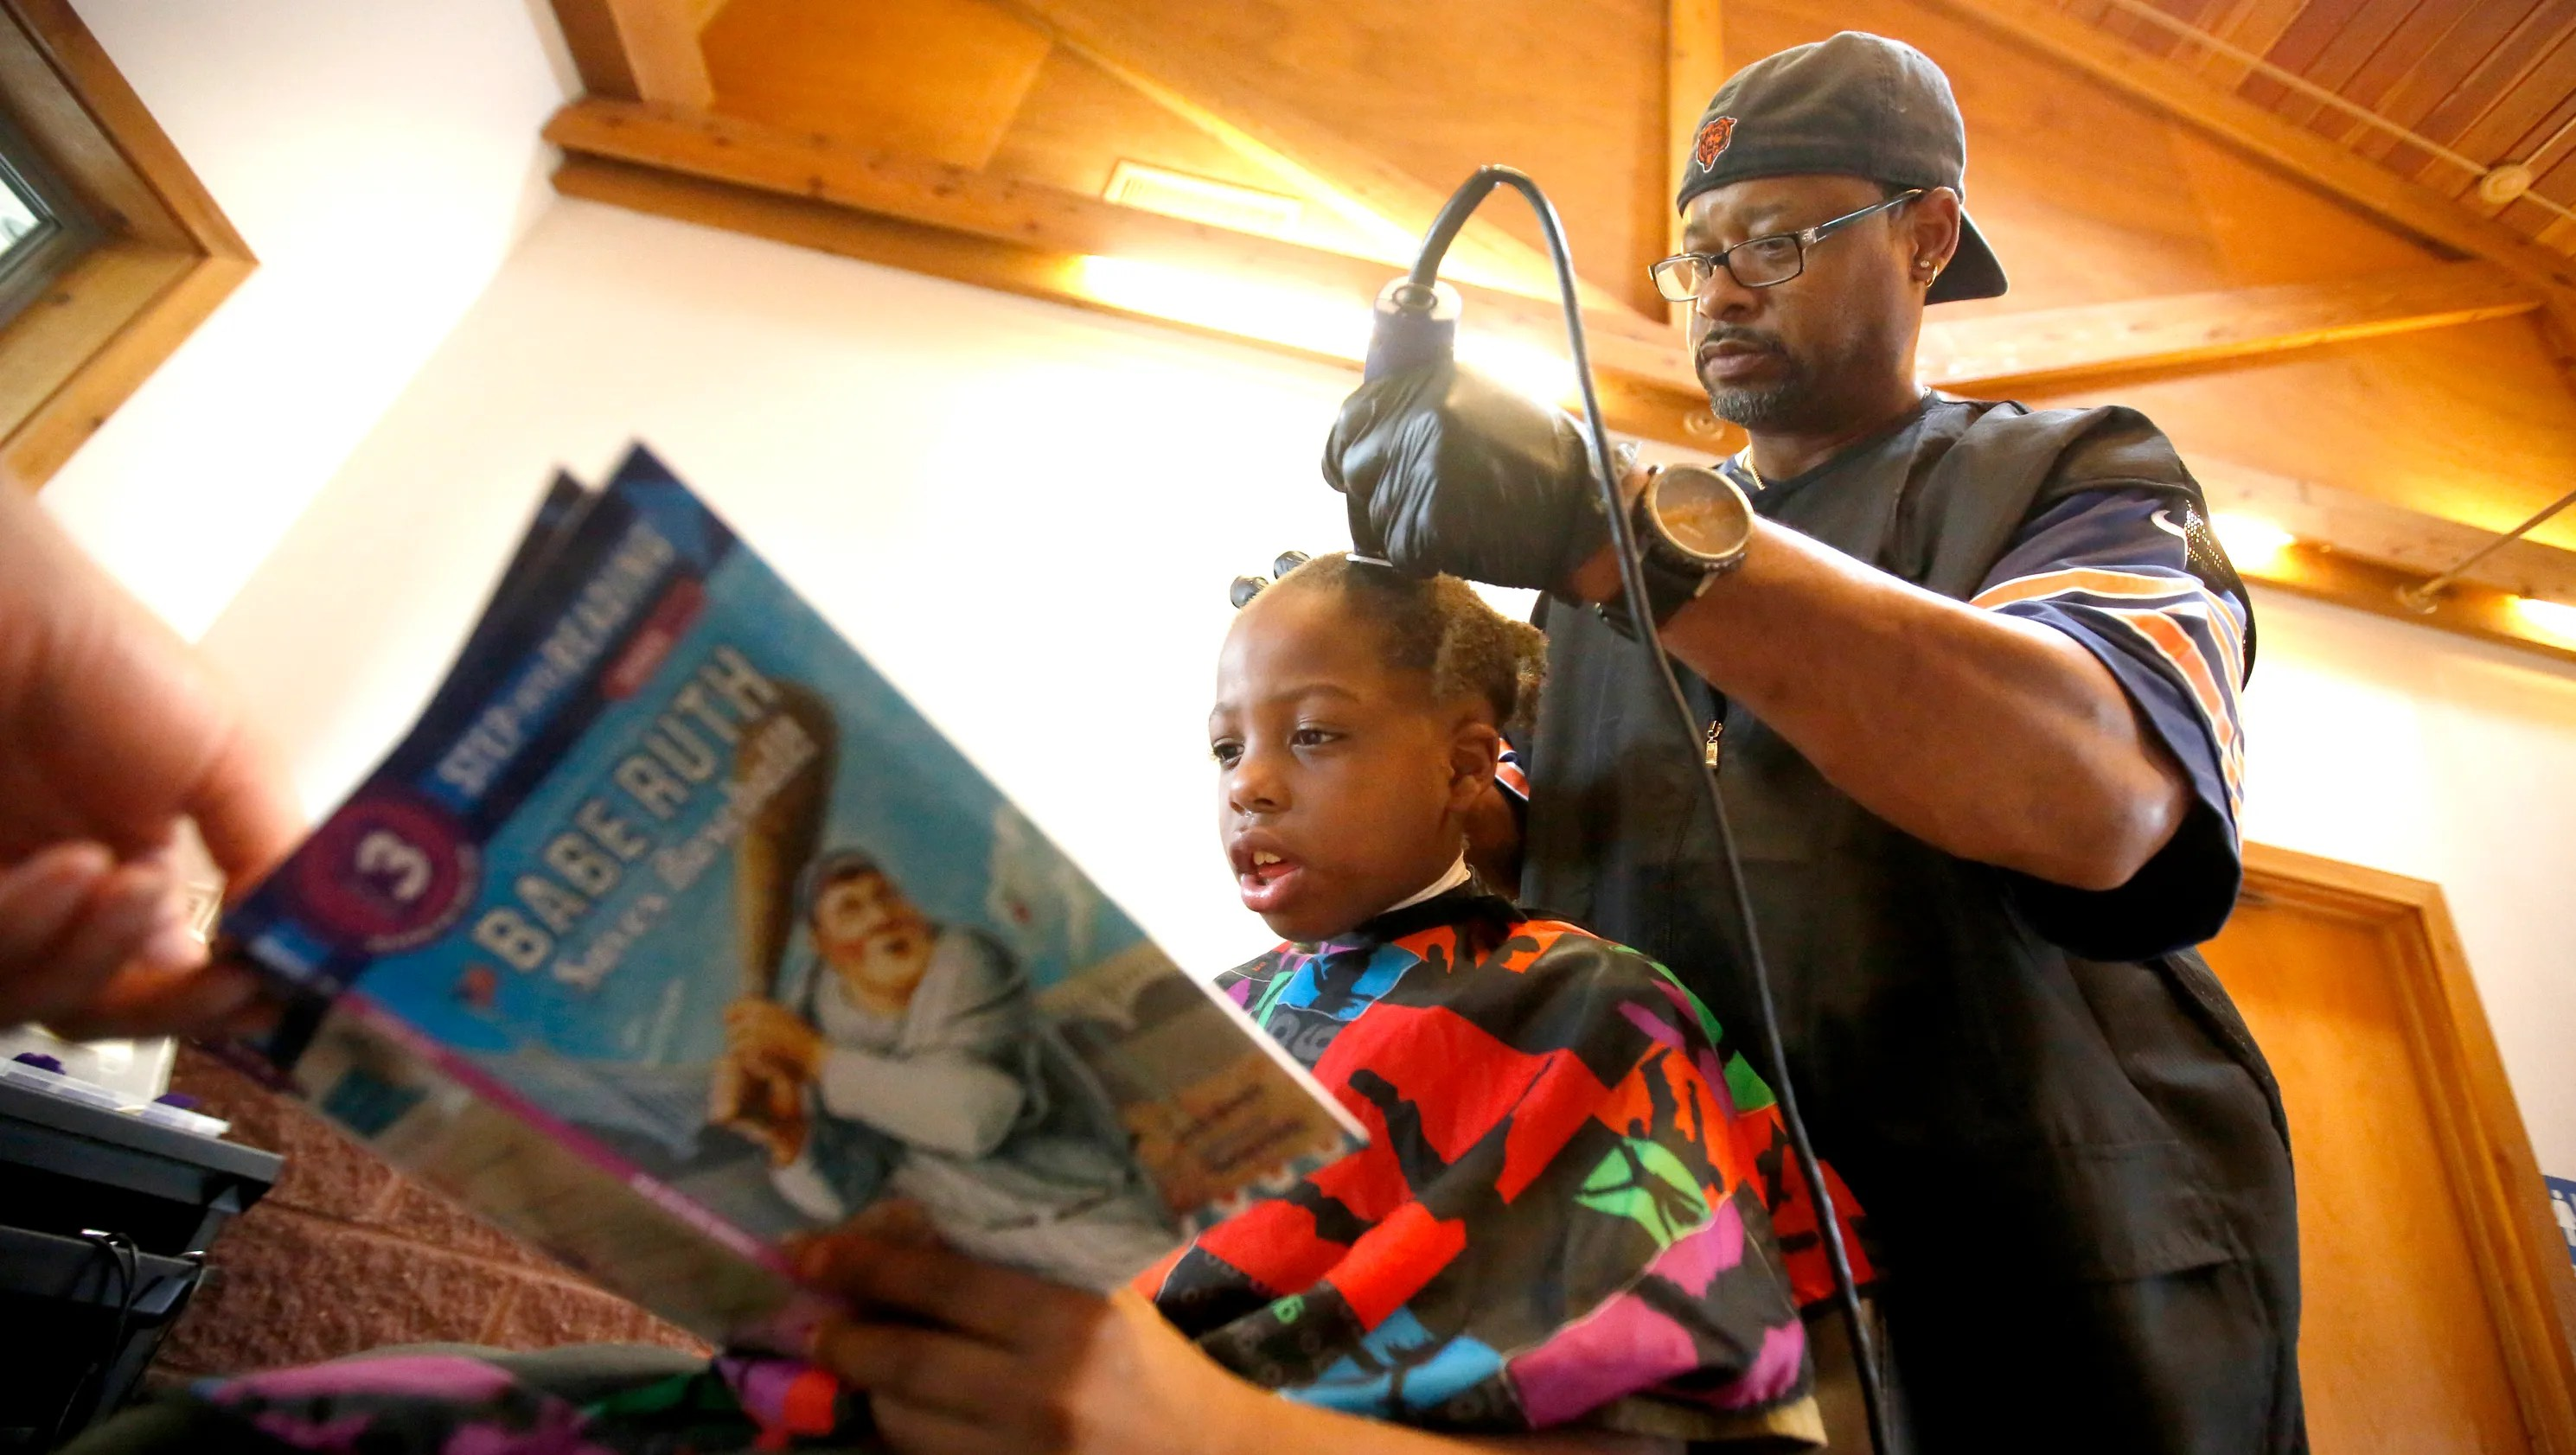 Iowa barbers deal for kids Read for haircut